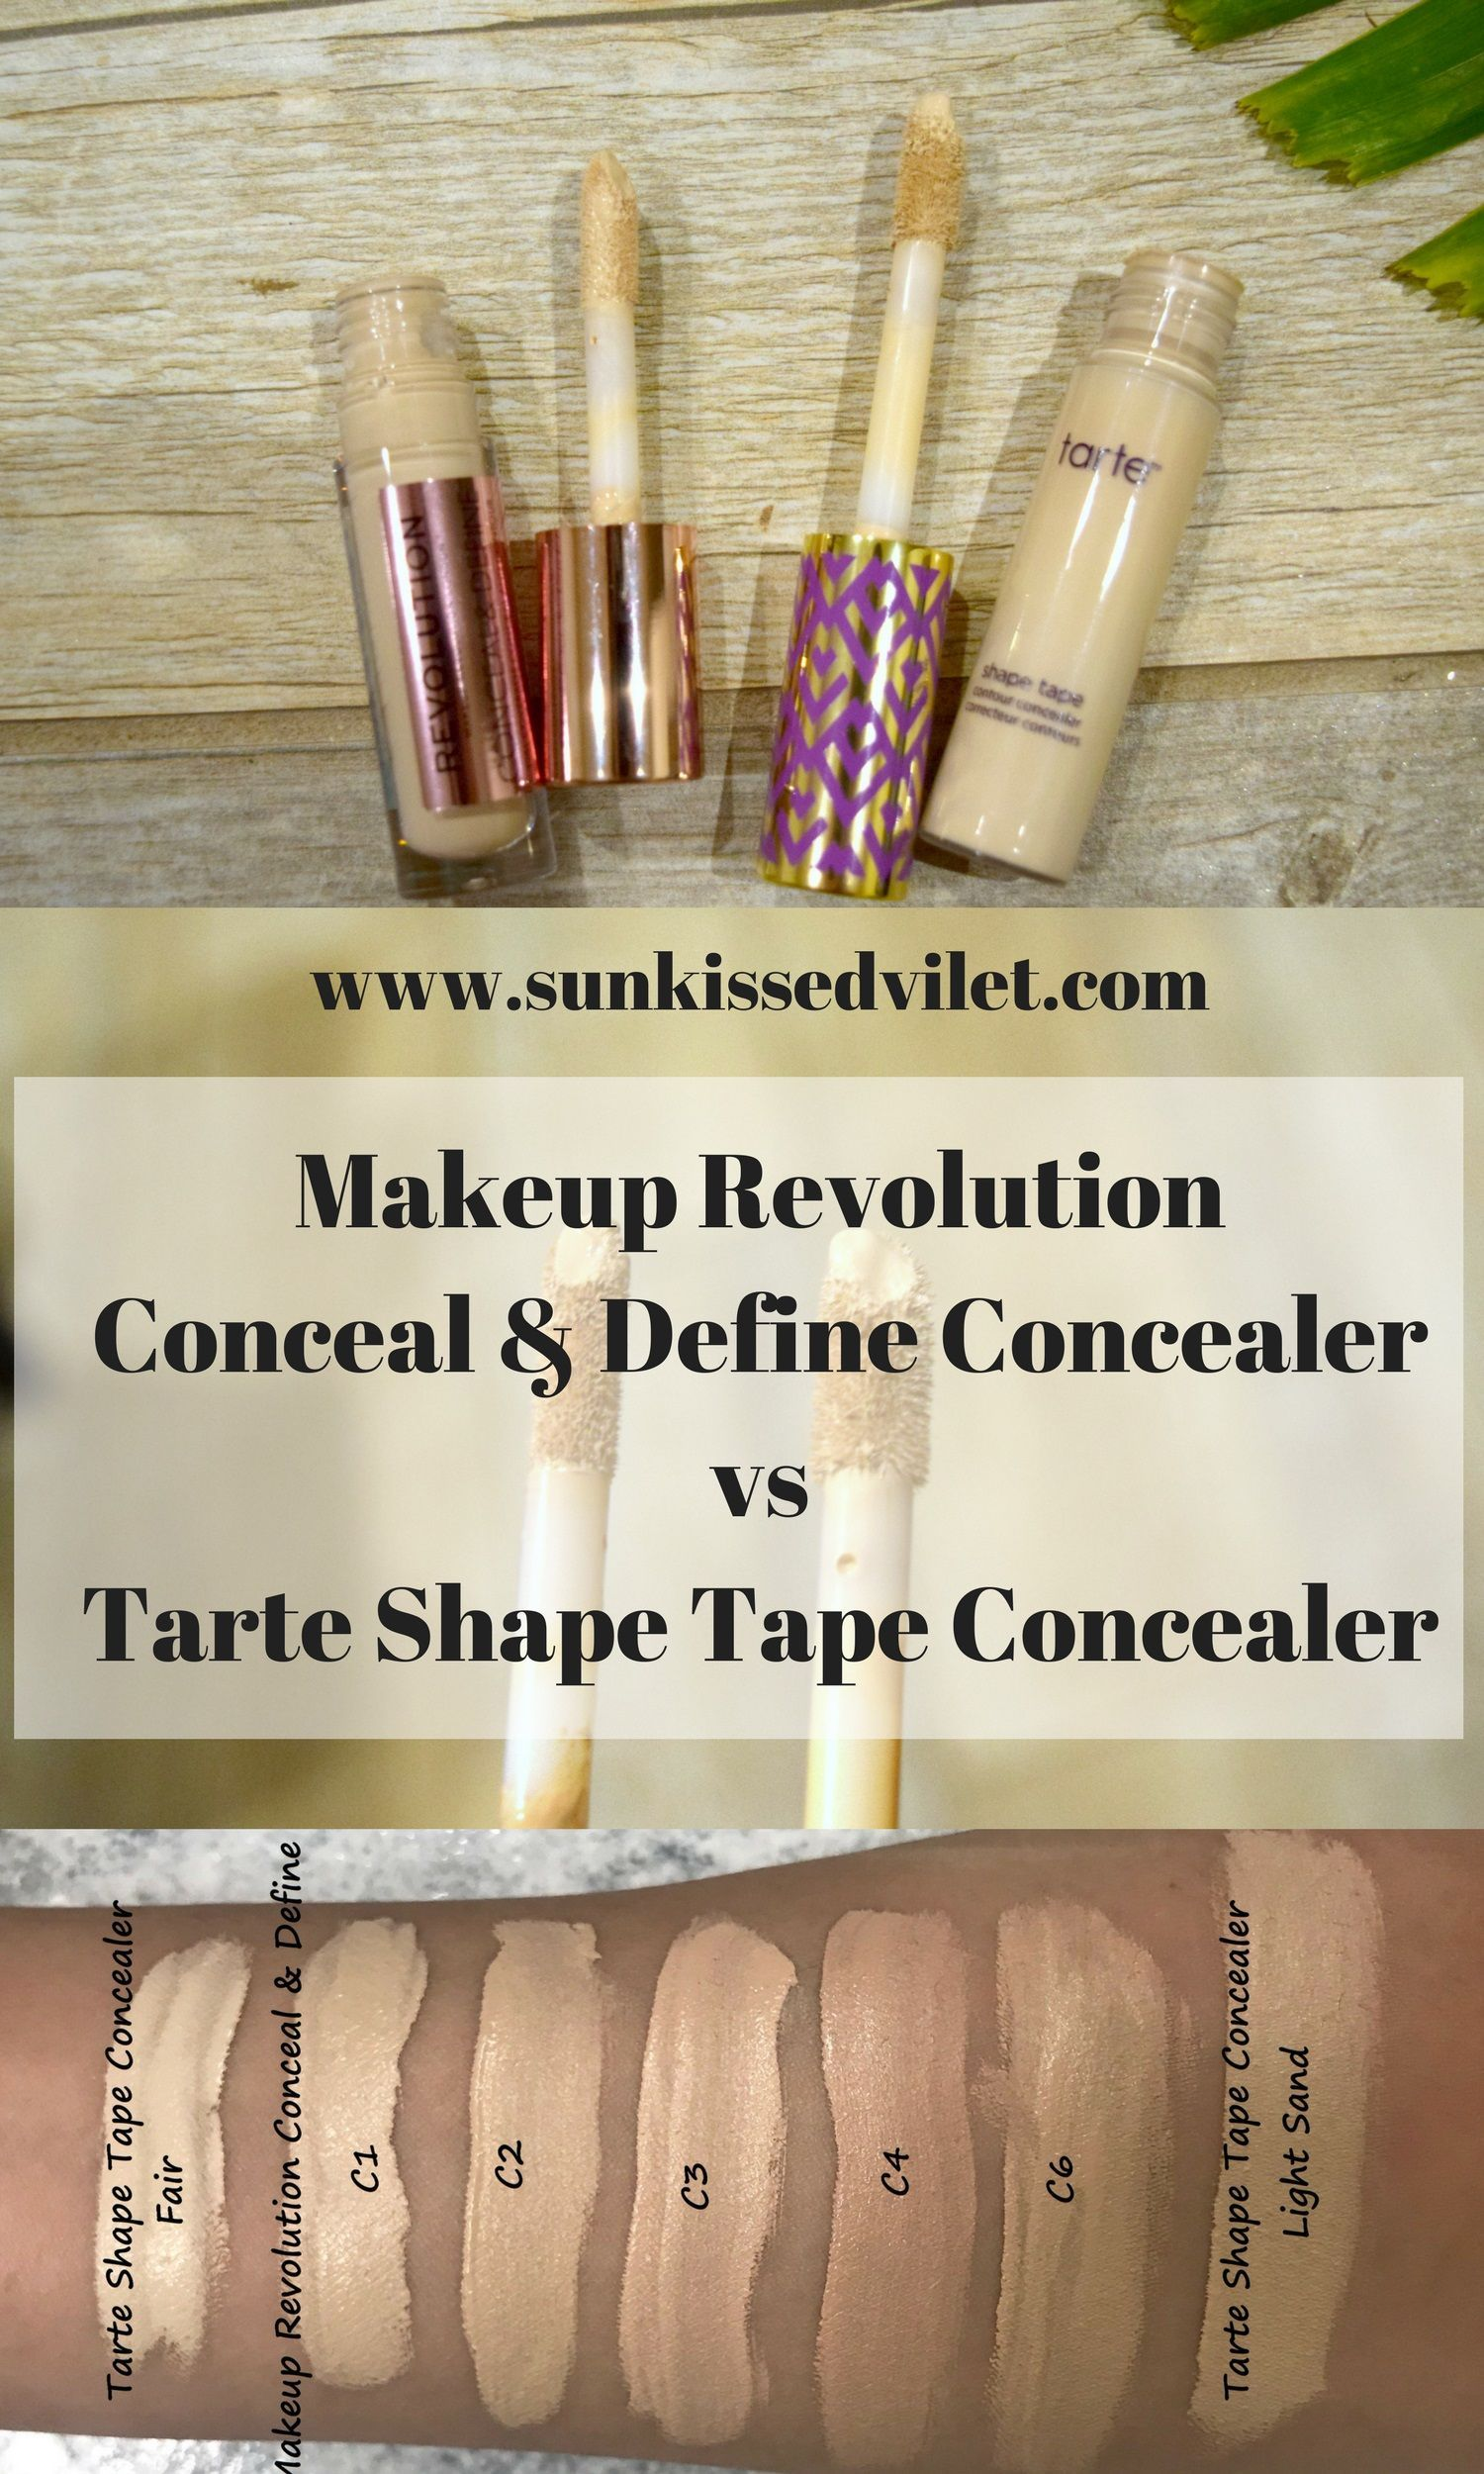 tarte shape tape dupe beauty pinterest makeup revolution swatch and makeup. Black Bedroom Furniture Sets. Home Design Ideas